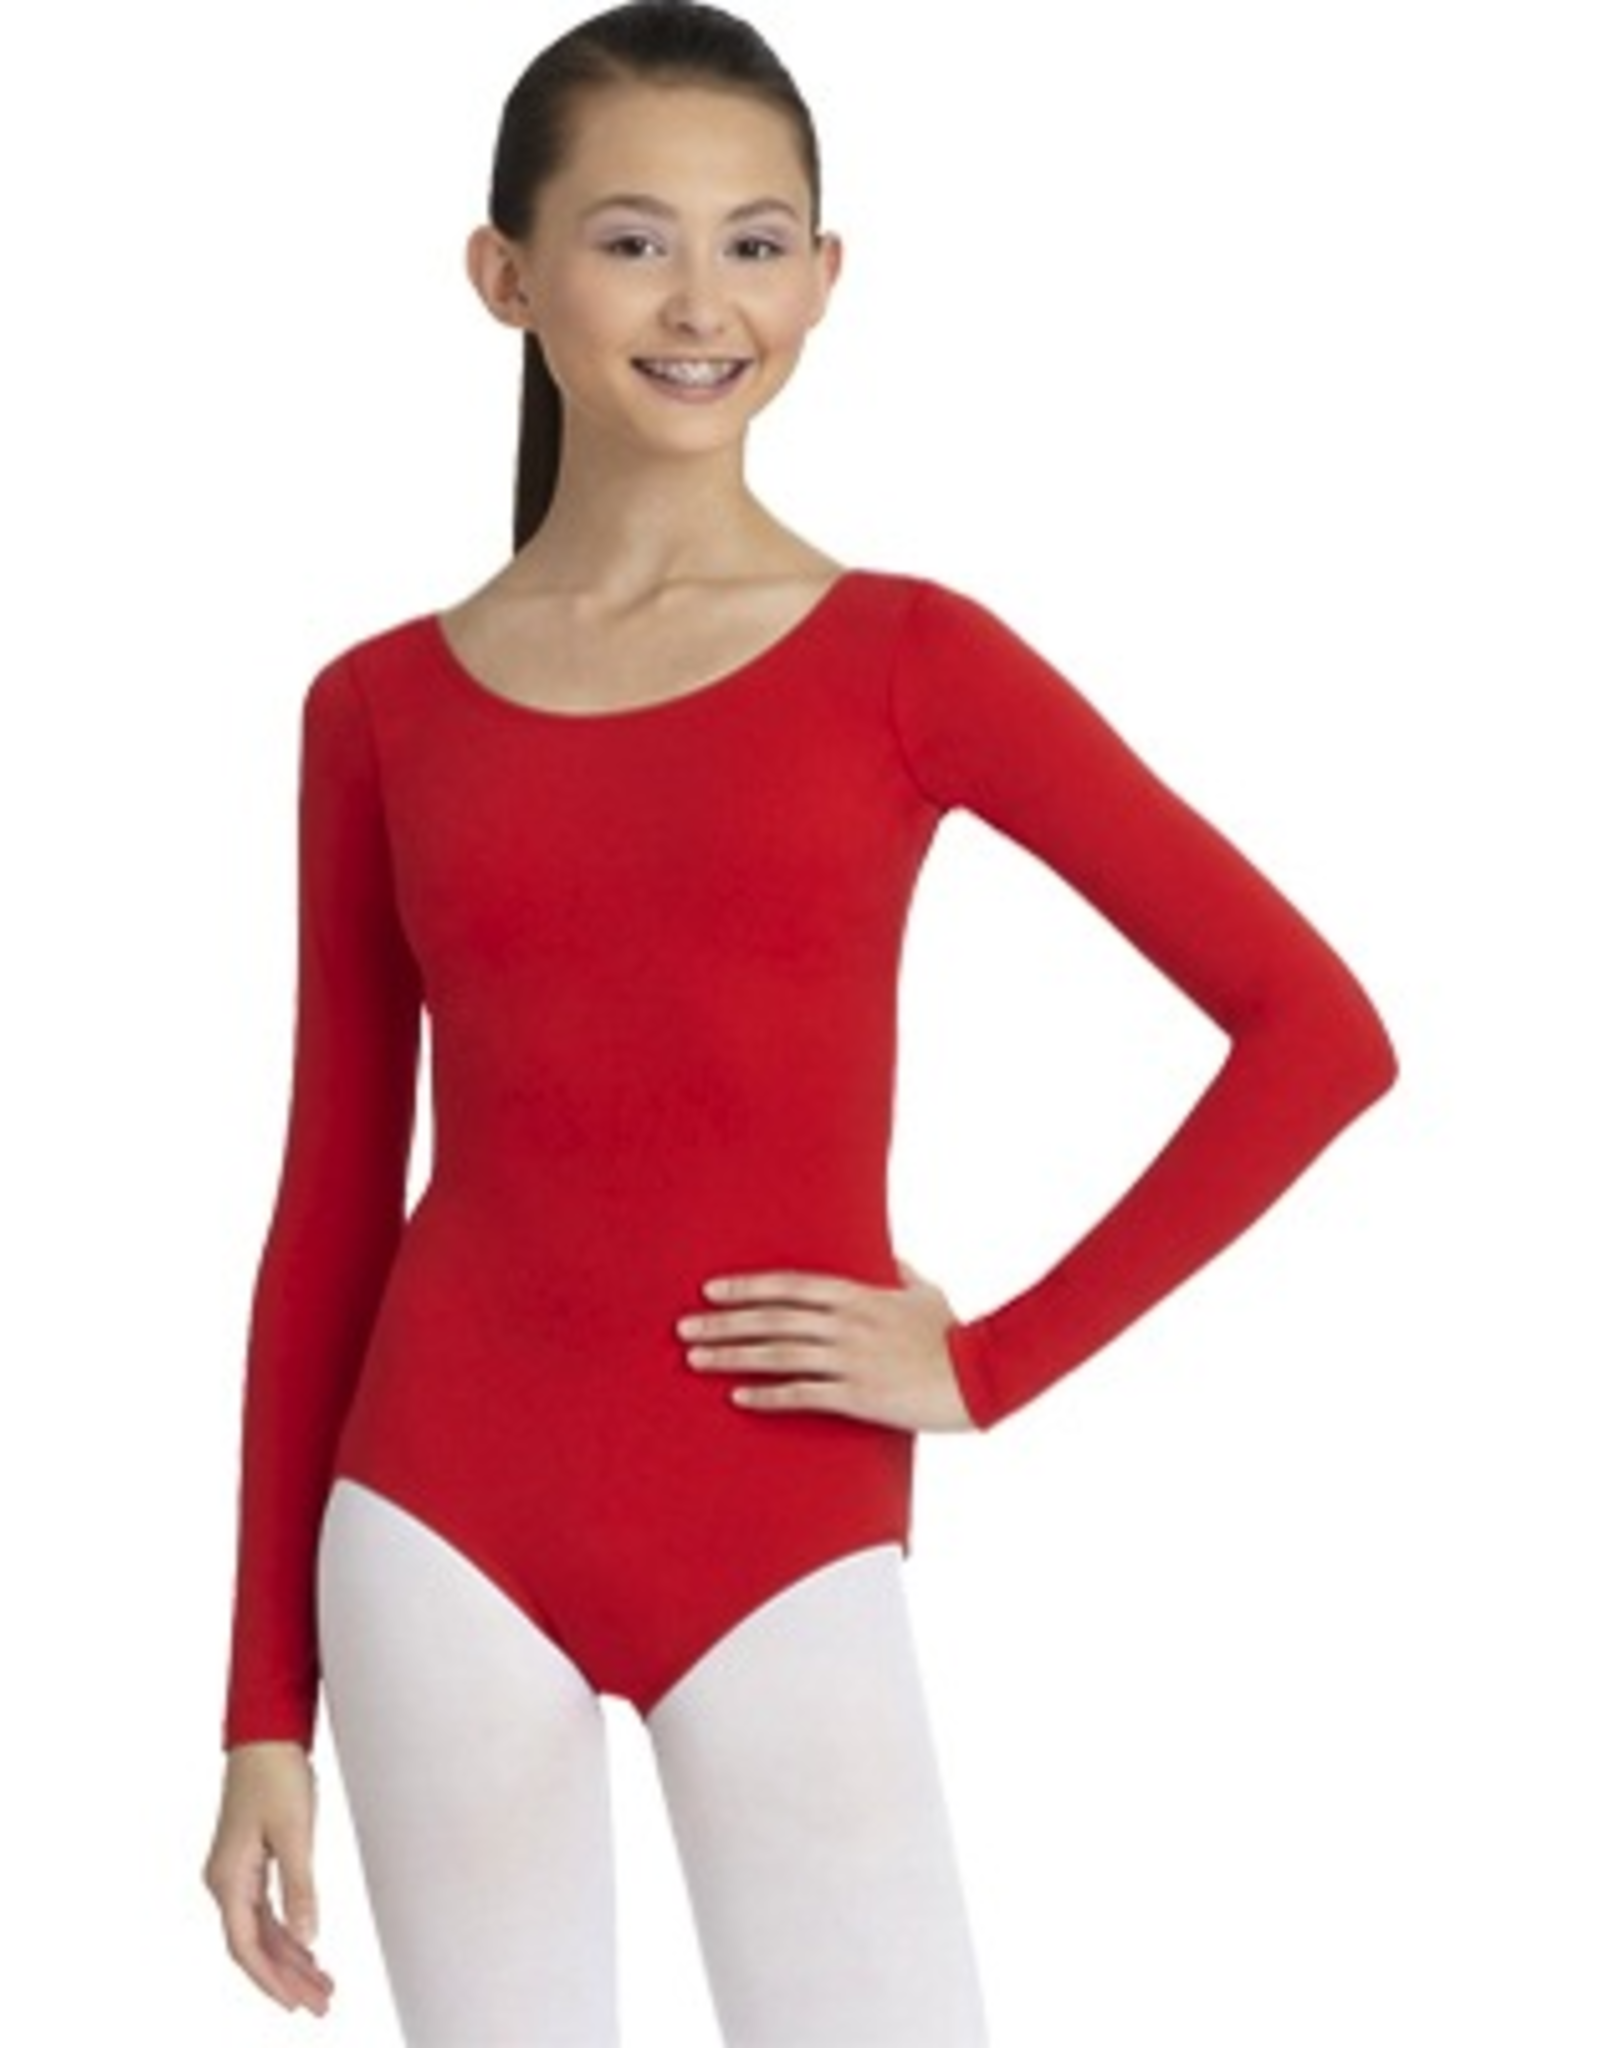 Capezio Adult Long Sleeve Leotard style TB135